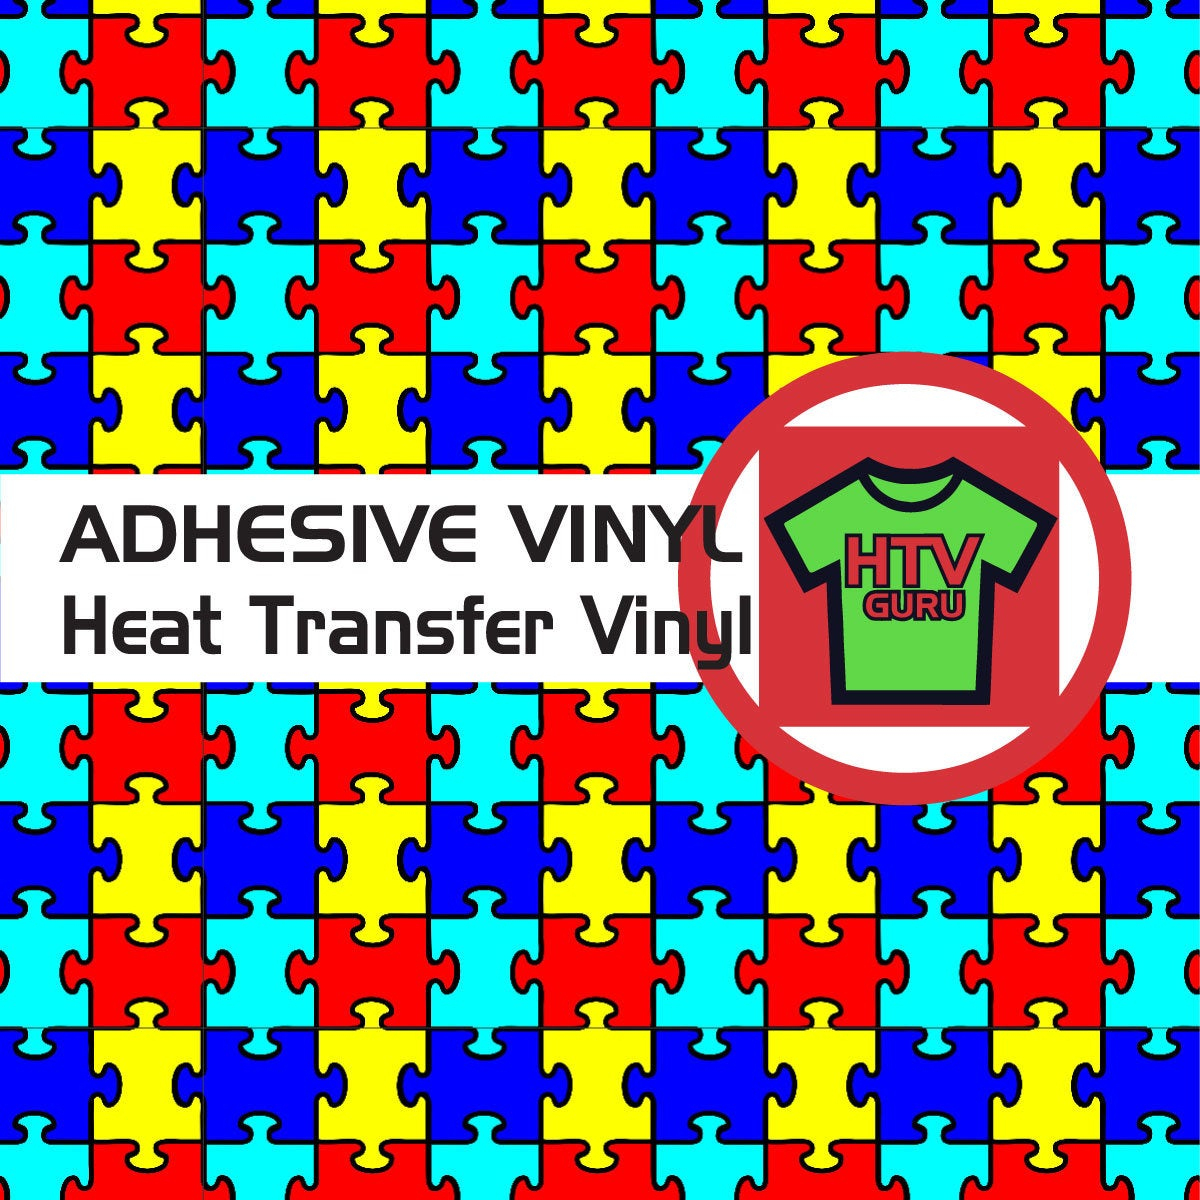 Puzzle Piece Autism Pattern Htv And Outdoor Vinyl Sheets   Etsy - Puzzle Print Htv